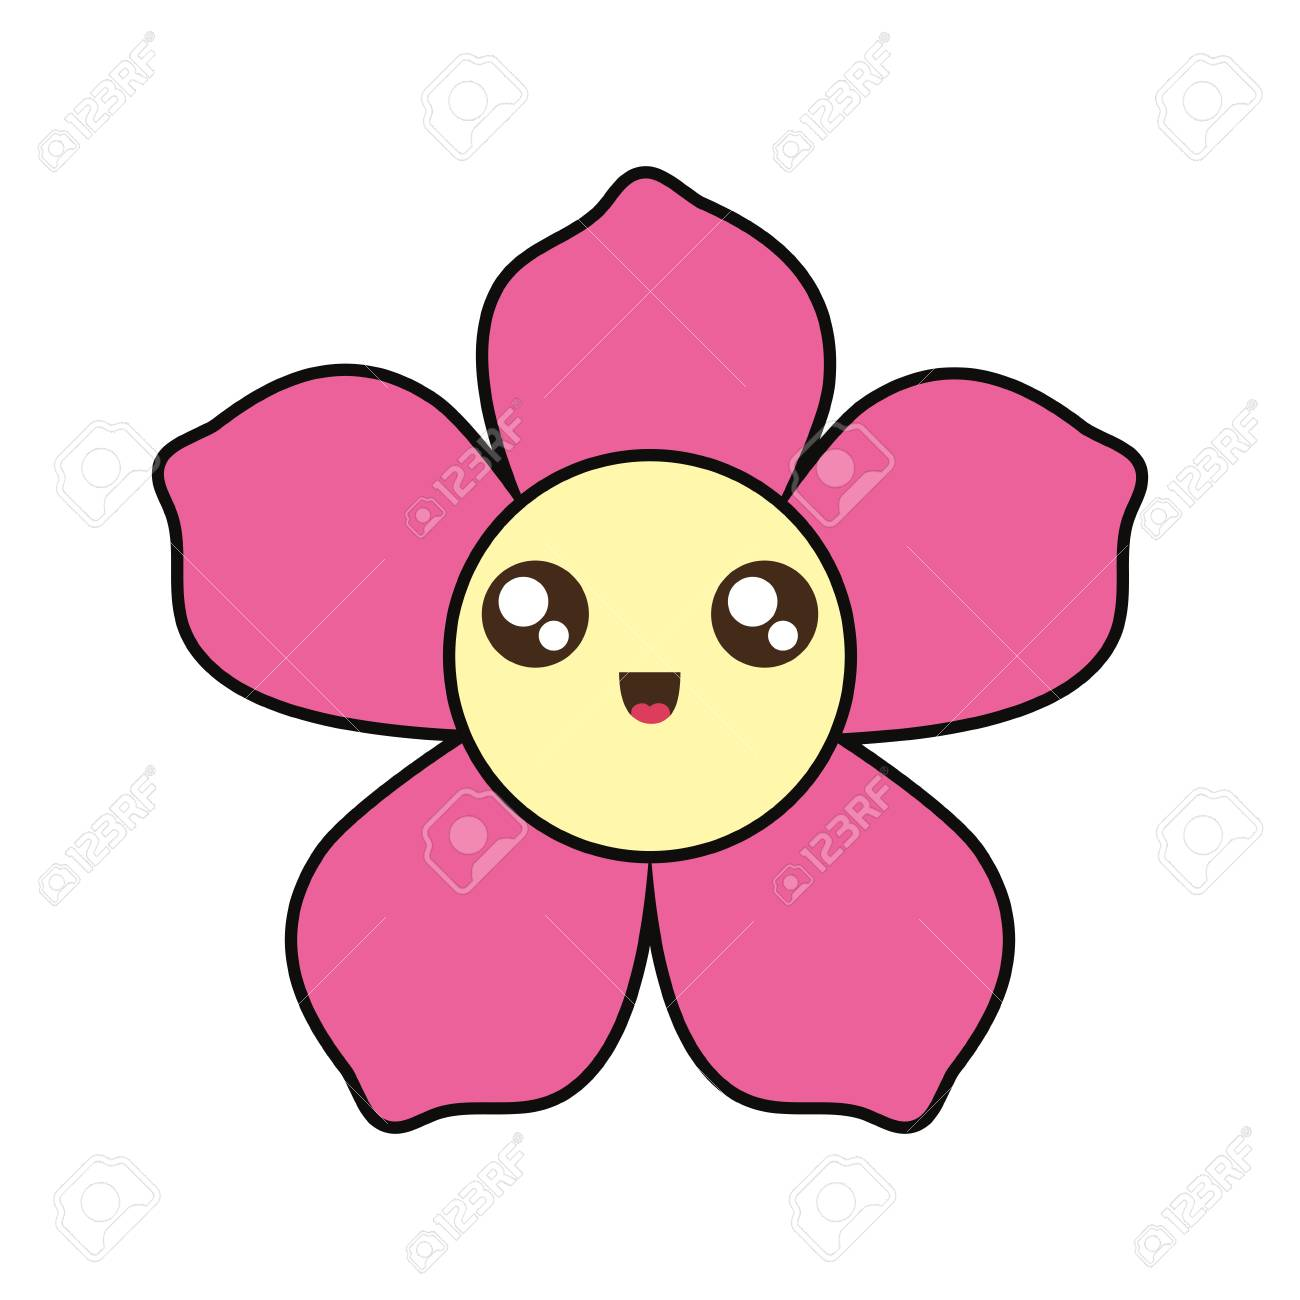 kawaii pink flower with yellow center over white background..